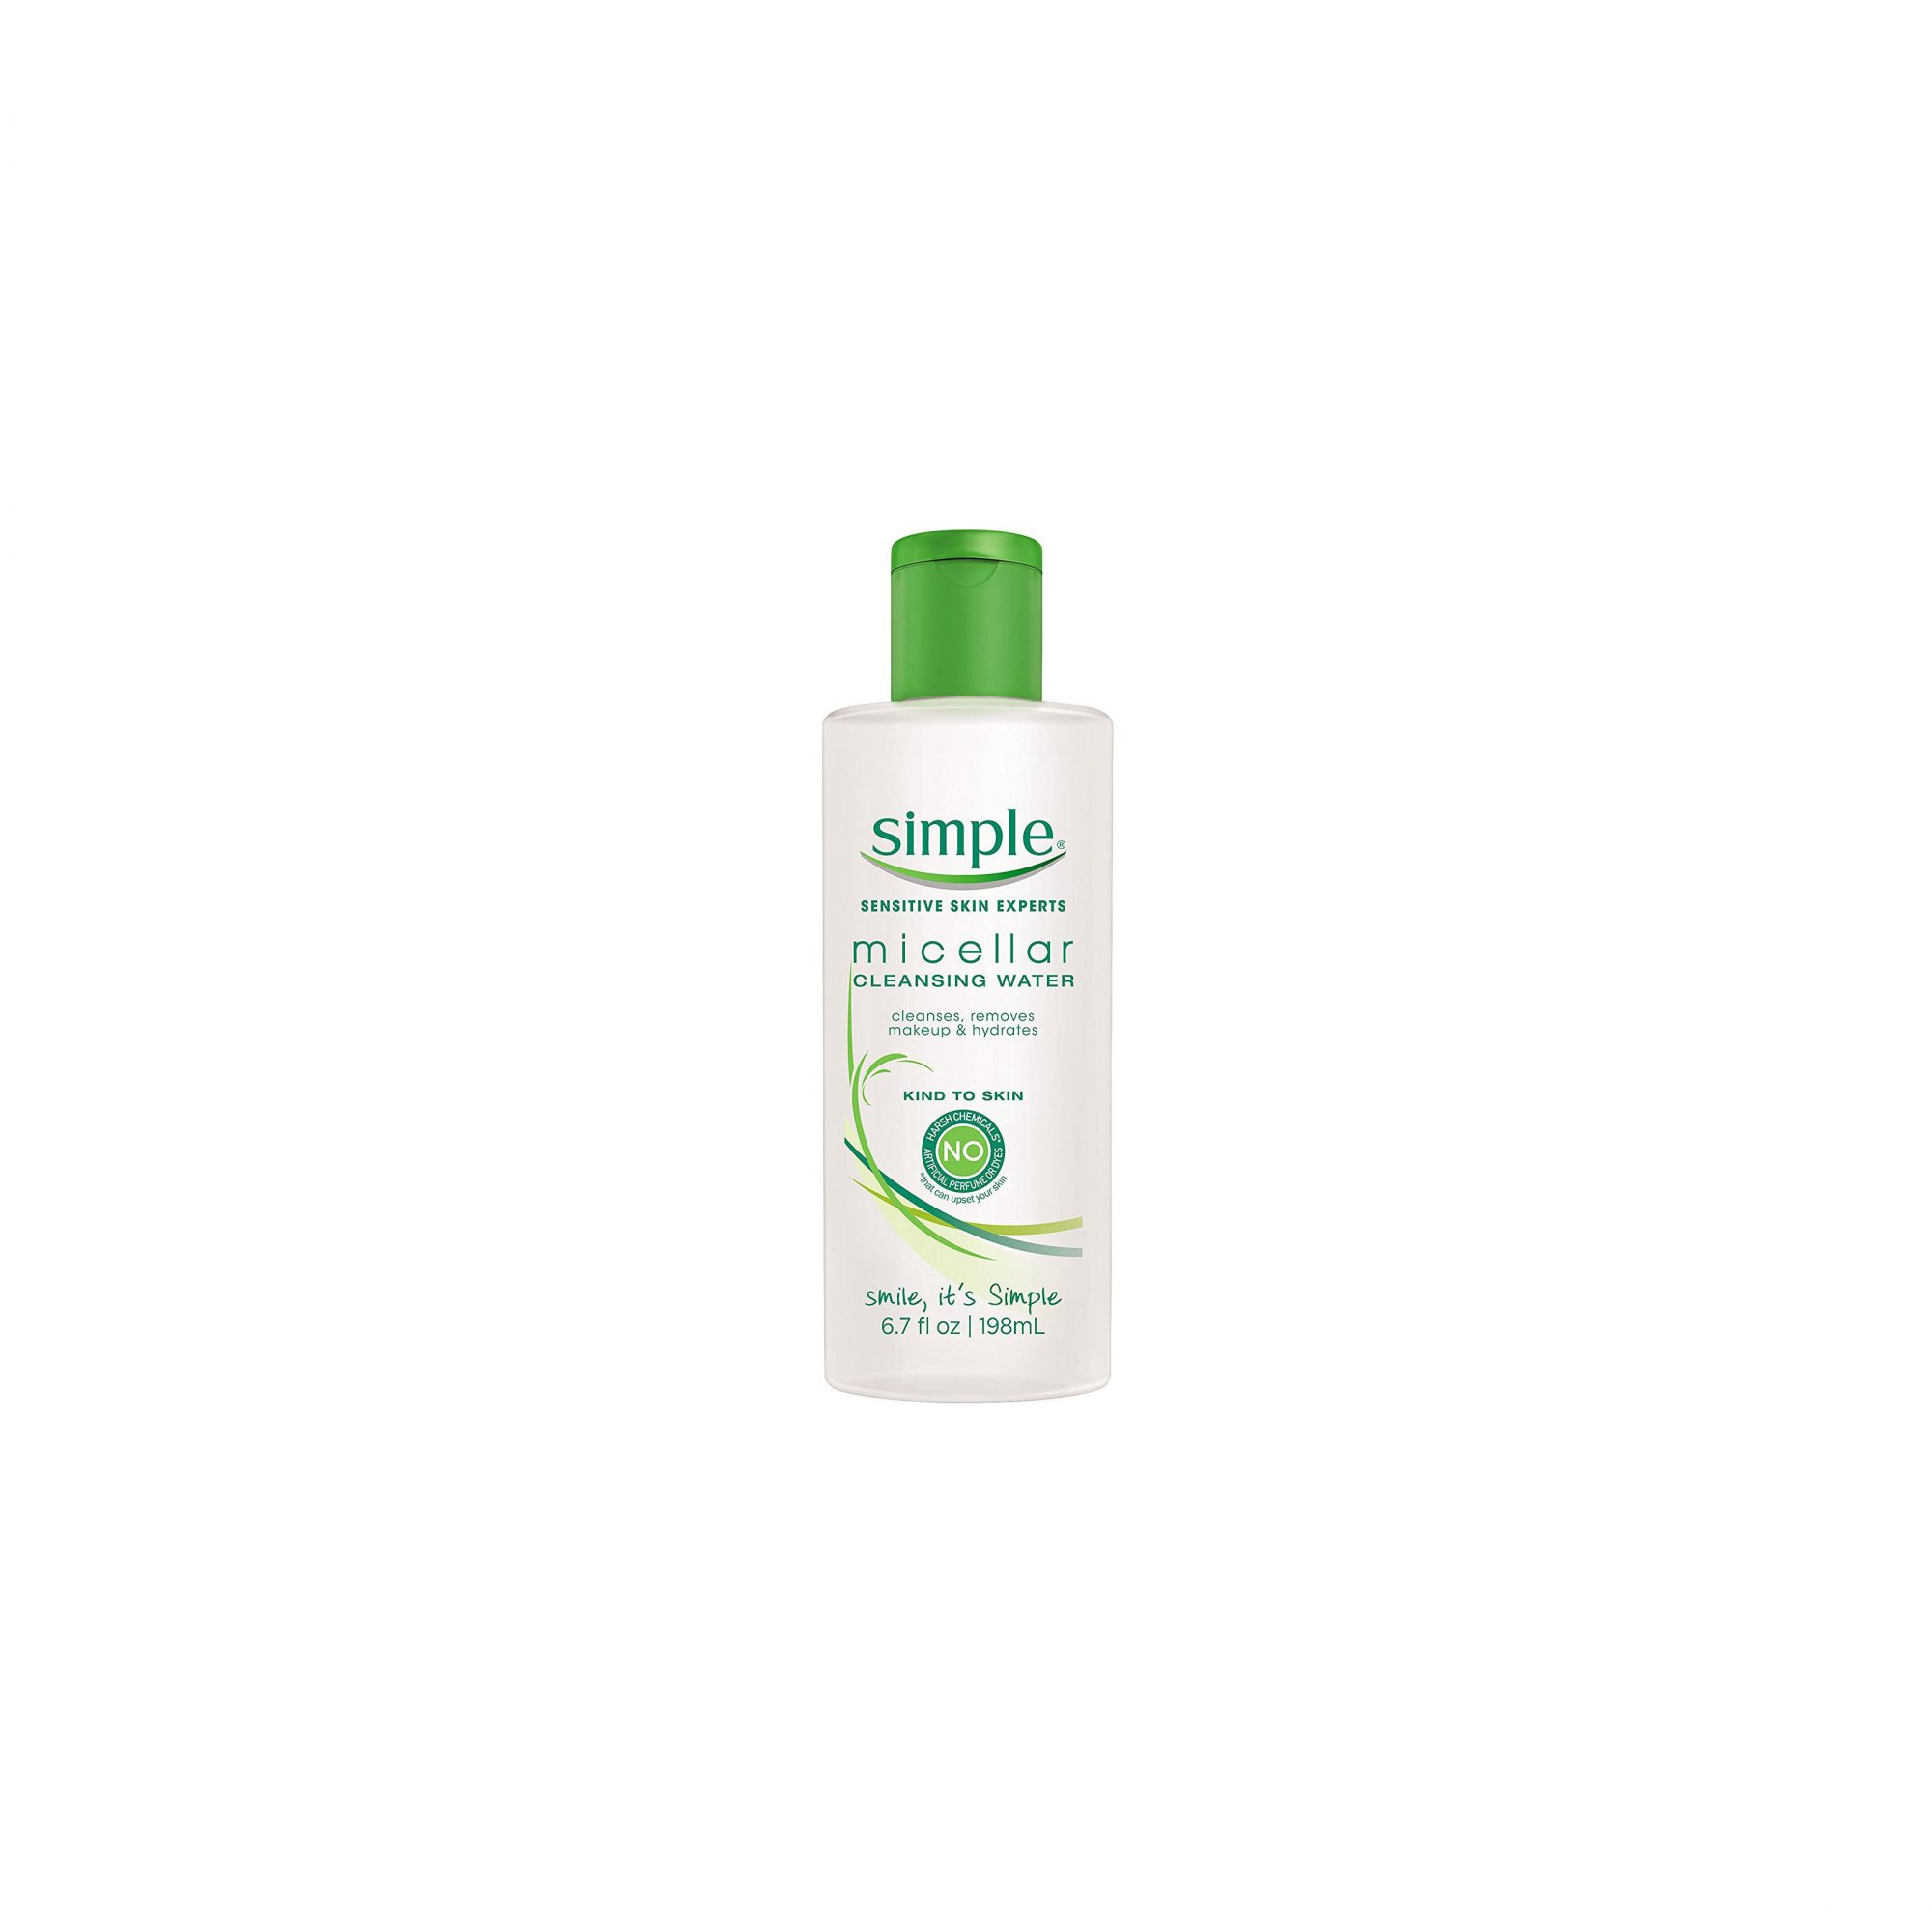 simple-micellar-water-drugstore-beauty-products